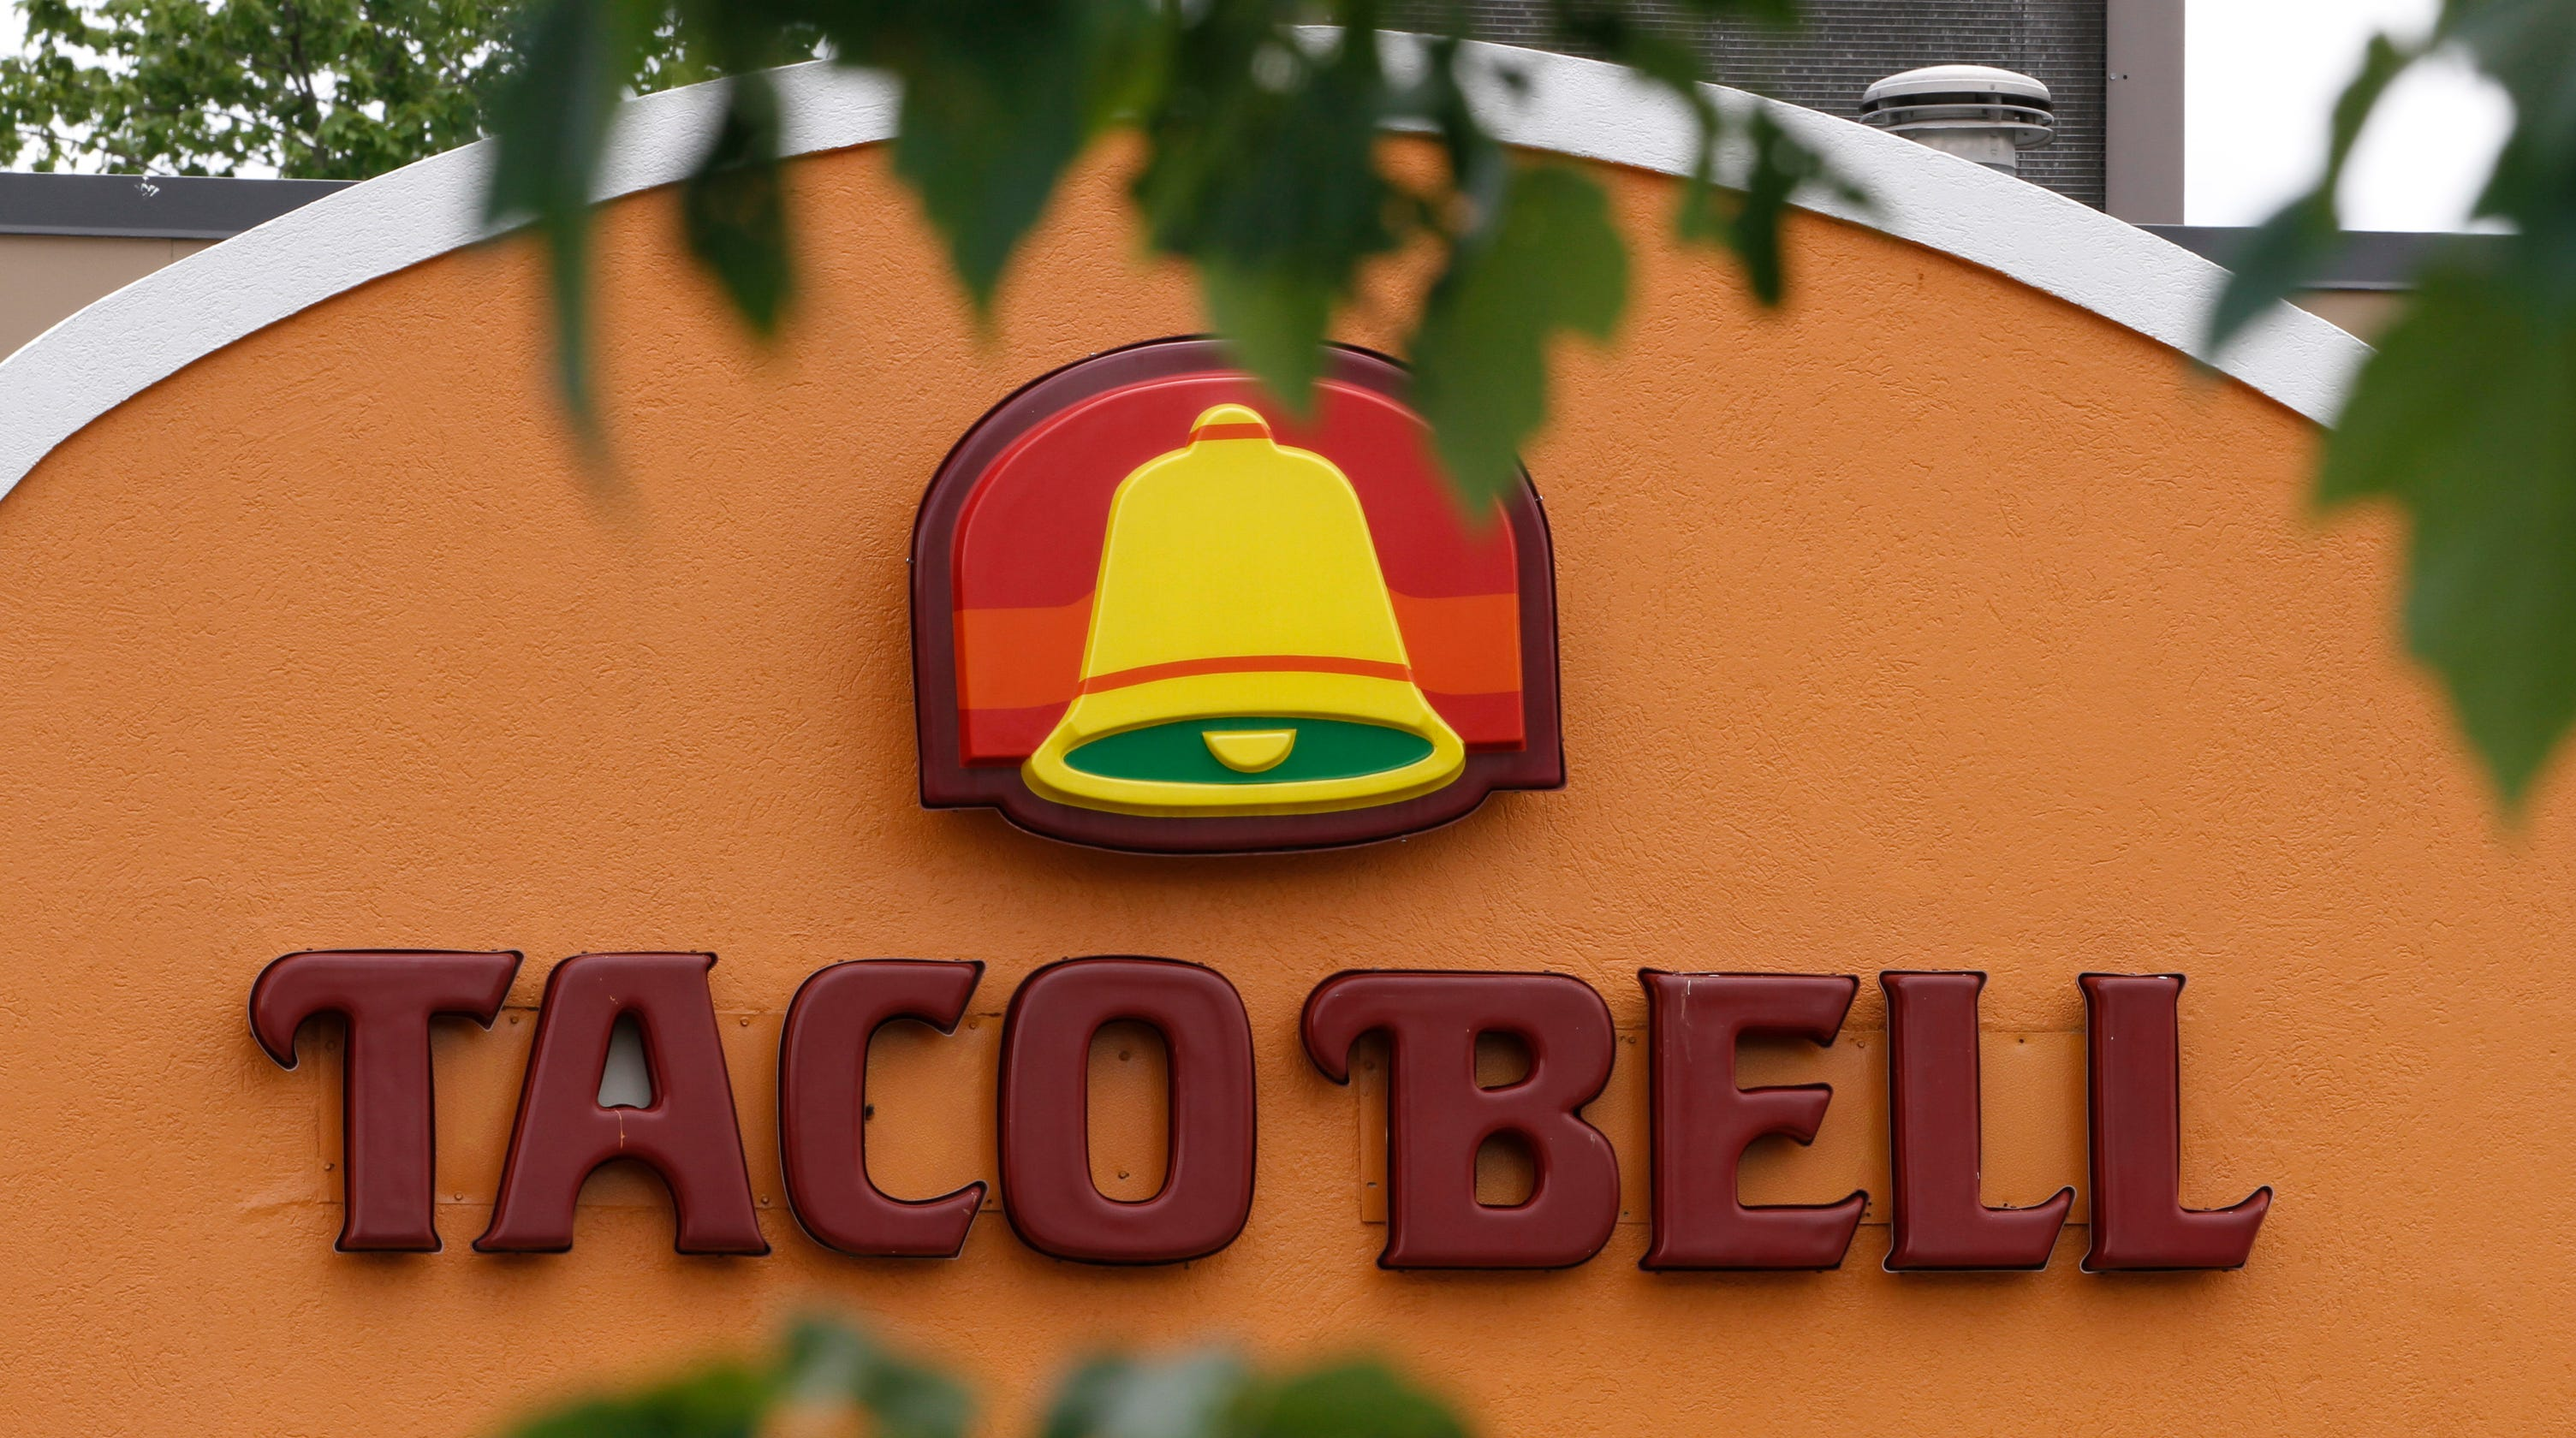 Free taco alert! Taco Bell is giving away free tacos again as part of its coronavirus response